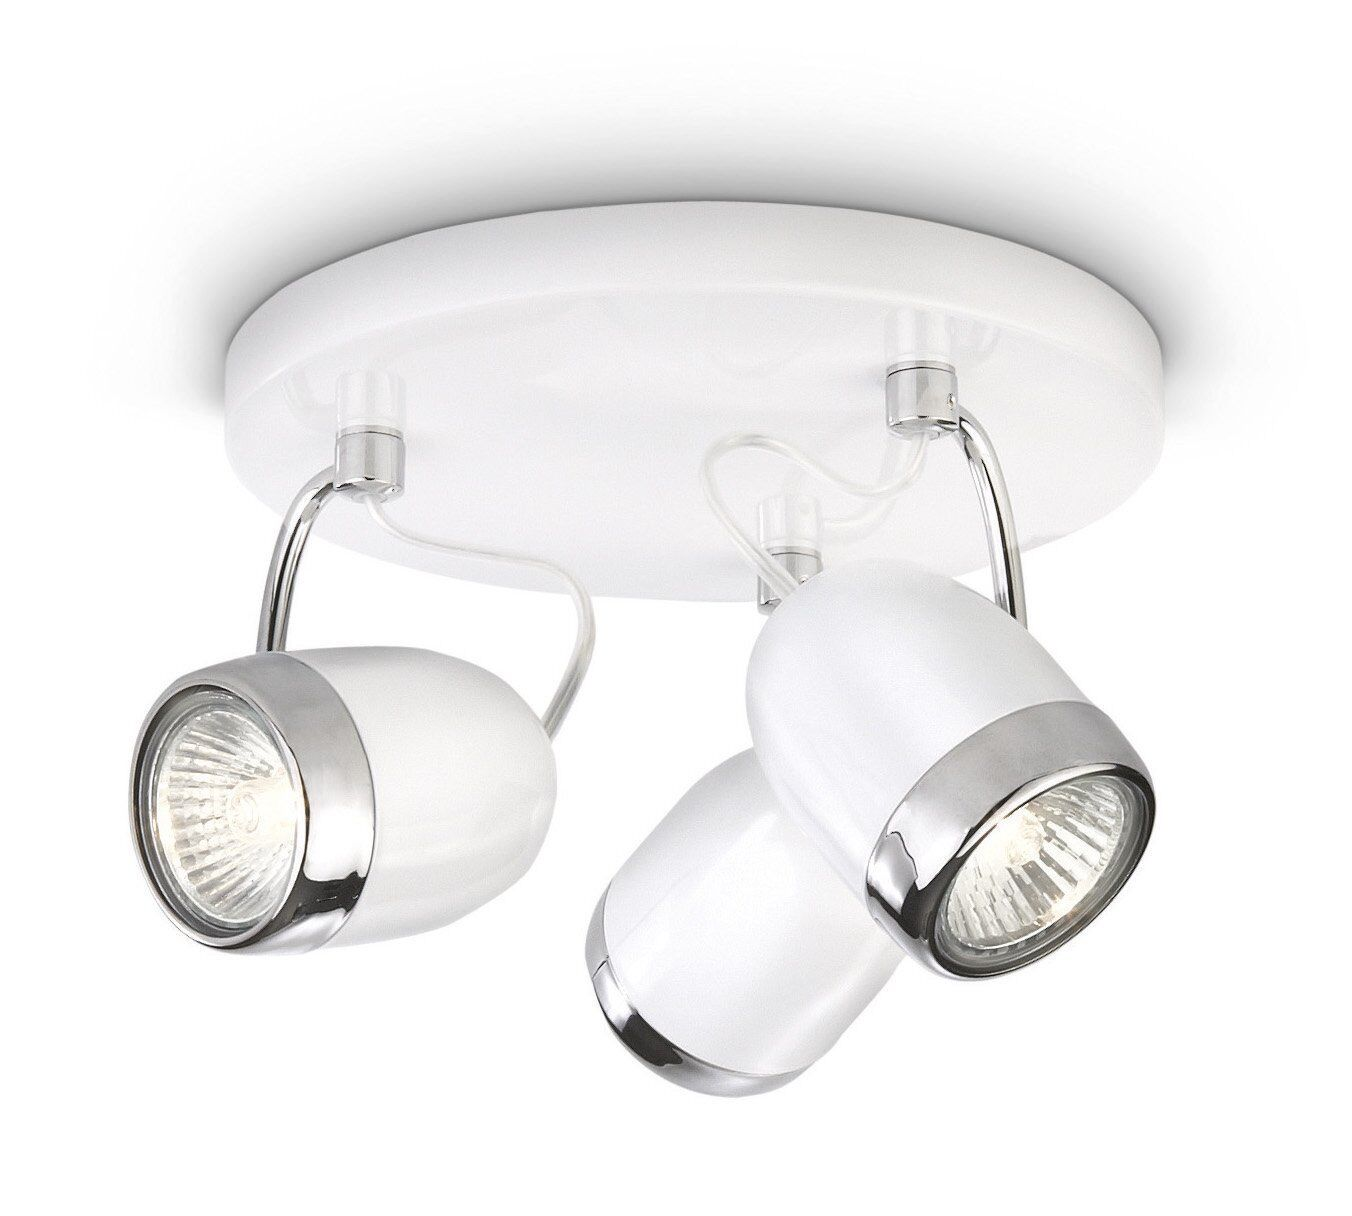 Philips myLiving Balsa 3 Spotlight Spiral Ceiling Light White ampoules incluent ampoules White 35 W c2a8ac